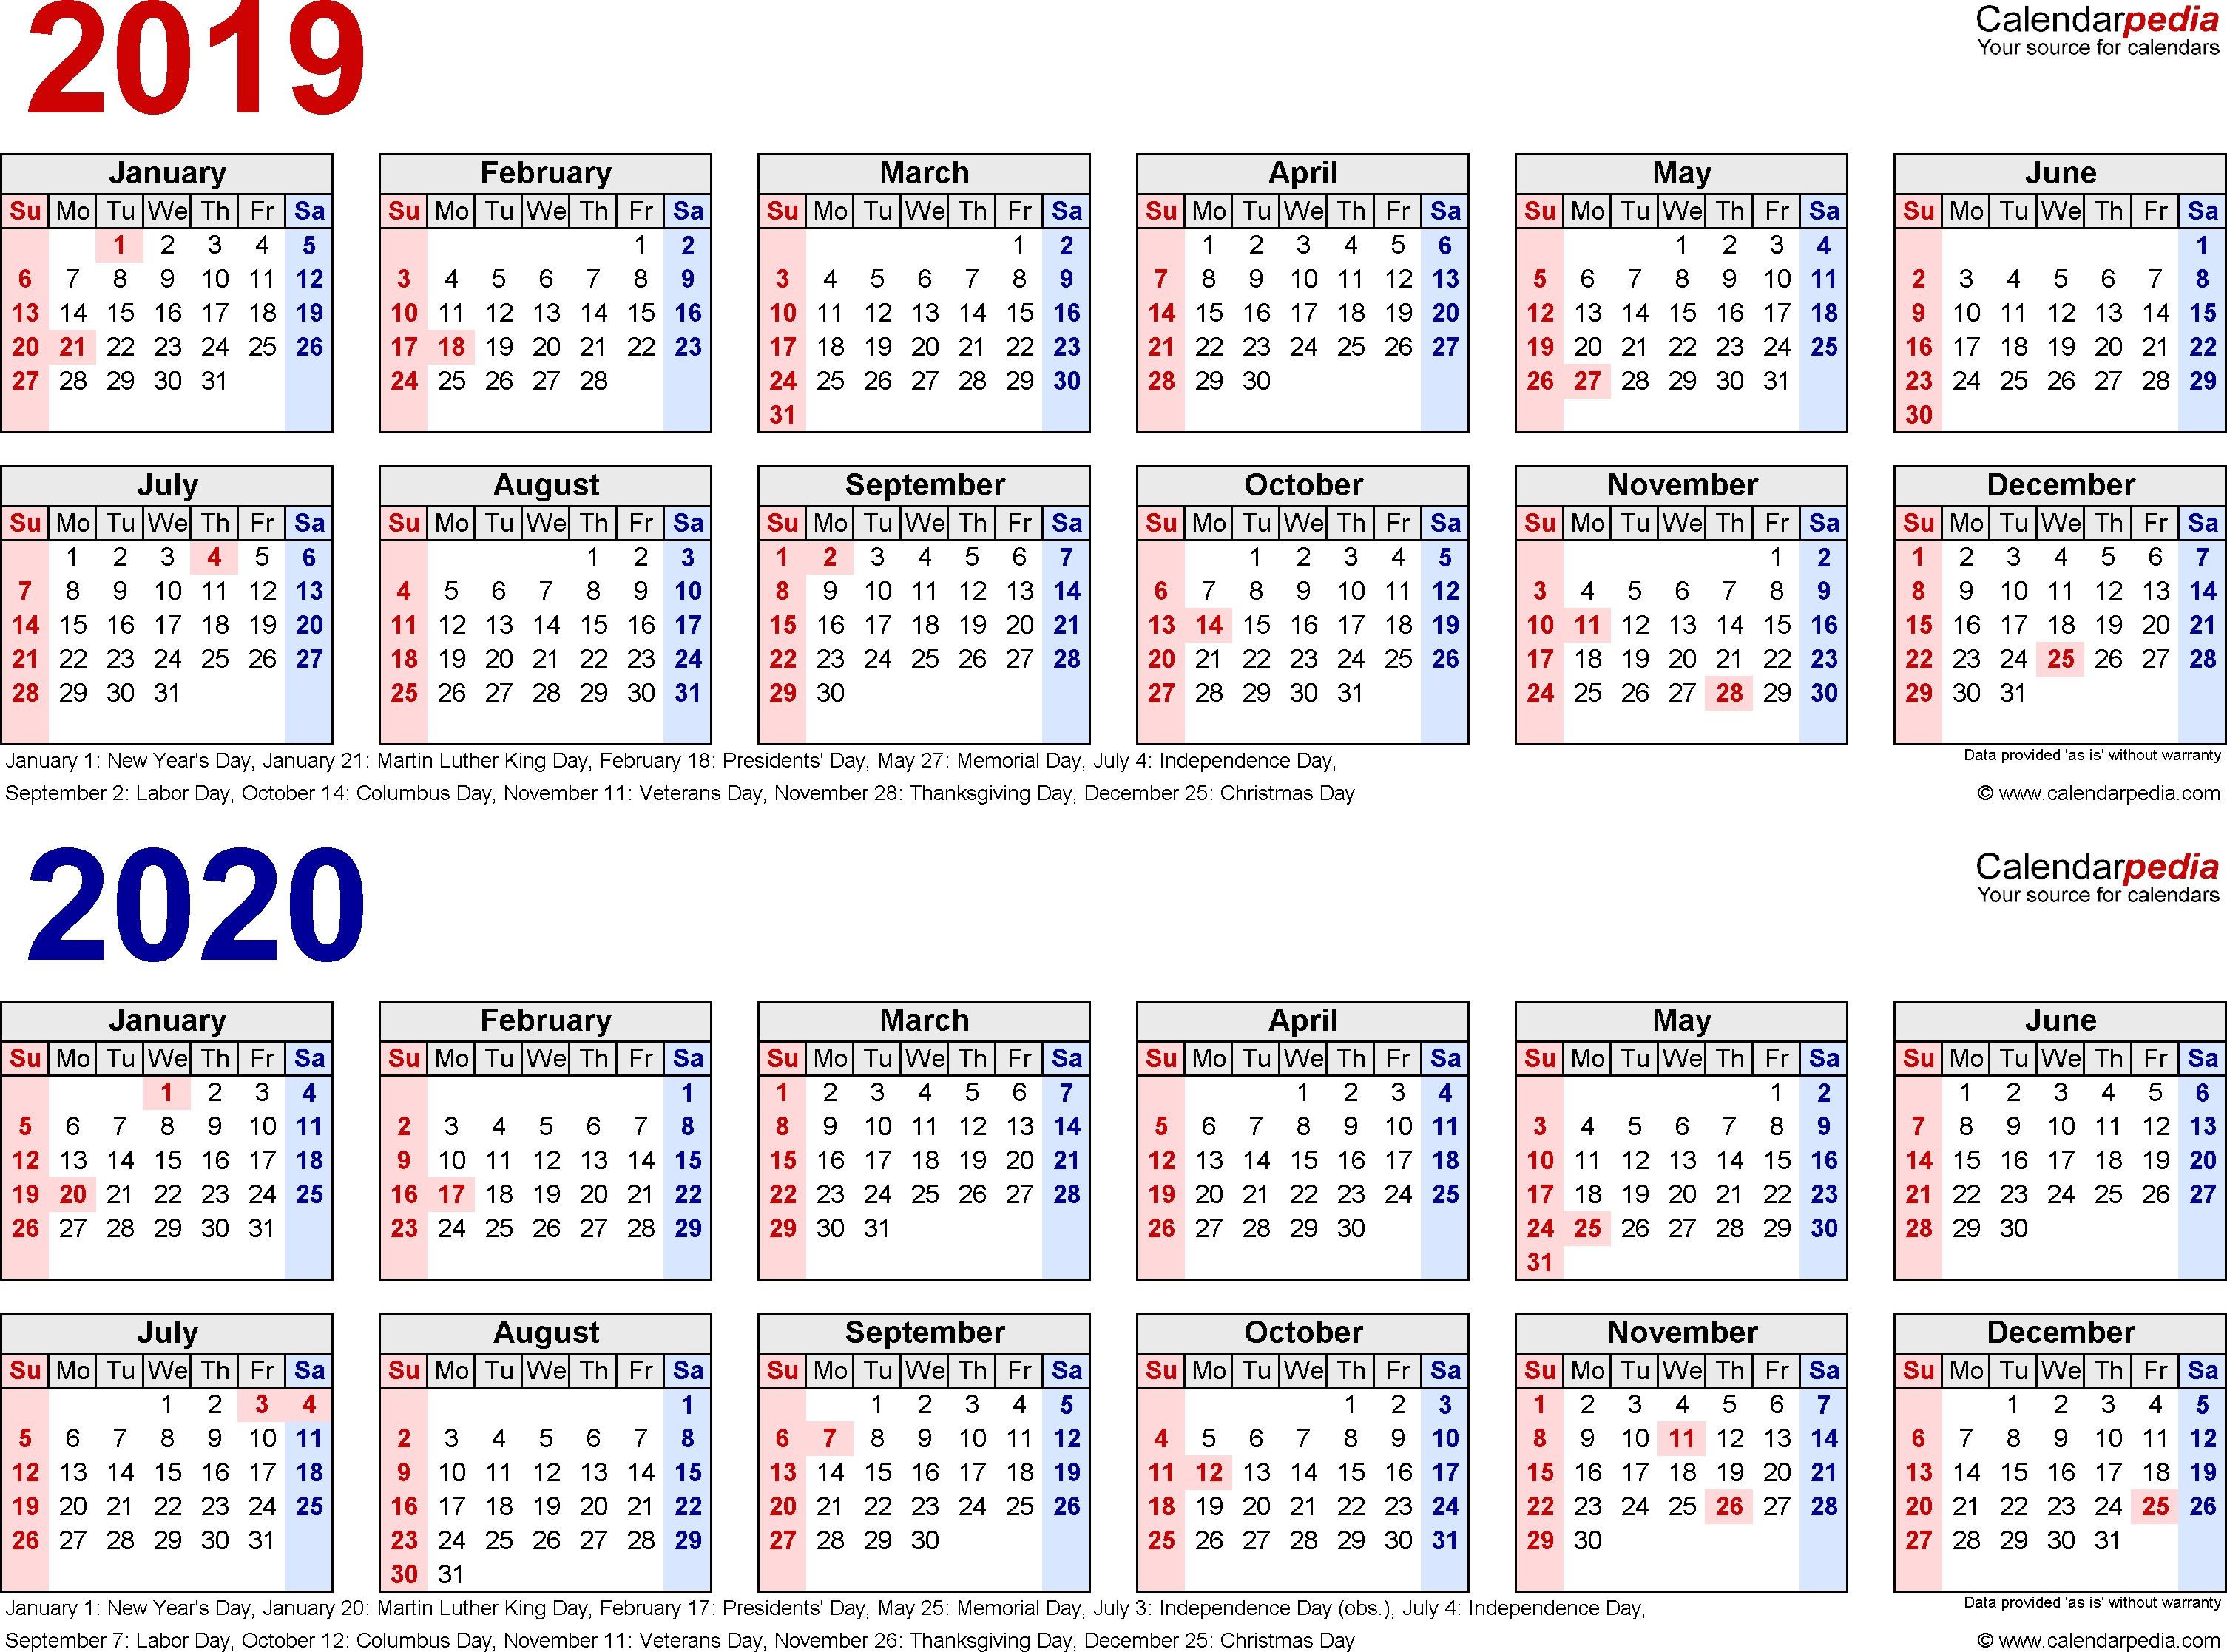 2019-2020 Calendar - Free Printable Two-Year Excel Calendars within List Dates Spreadhsheet For 2019-2020